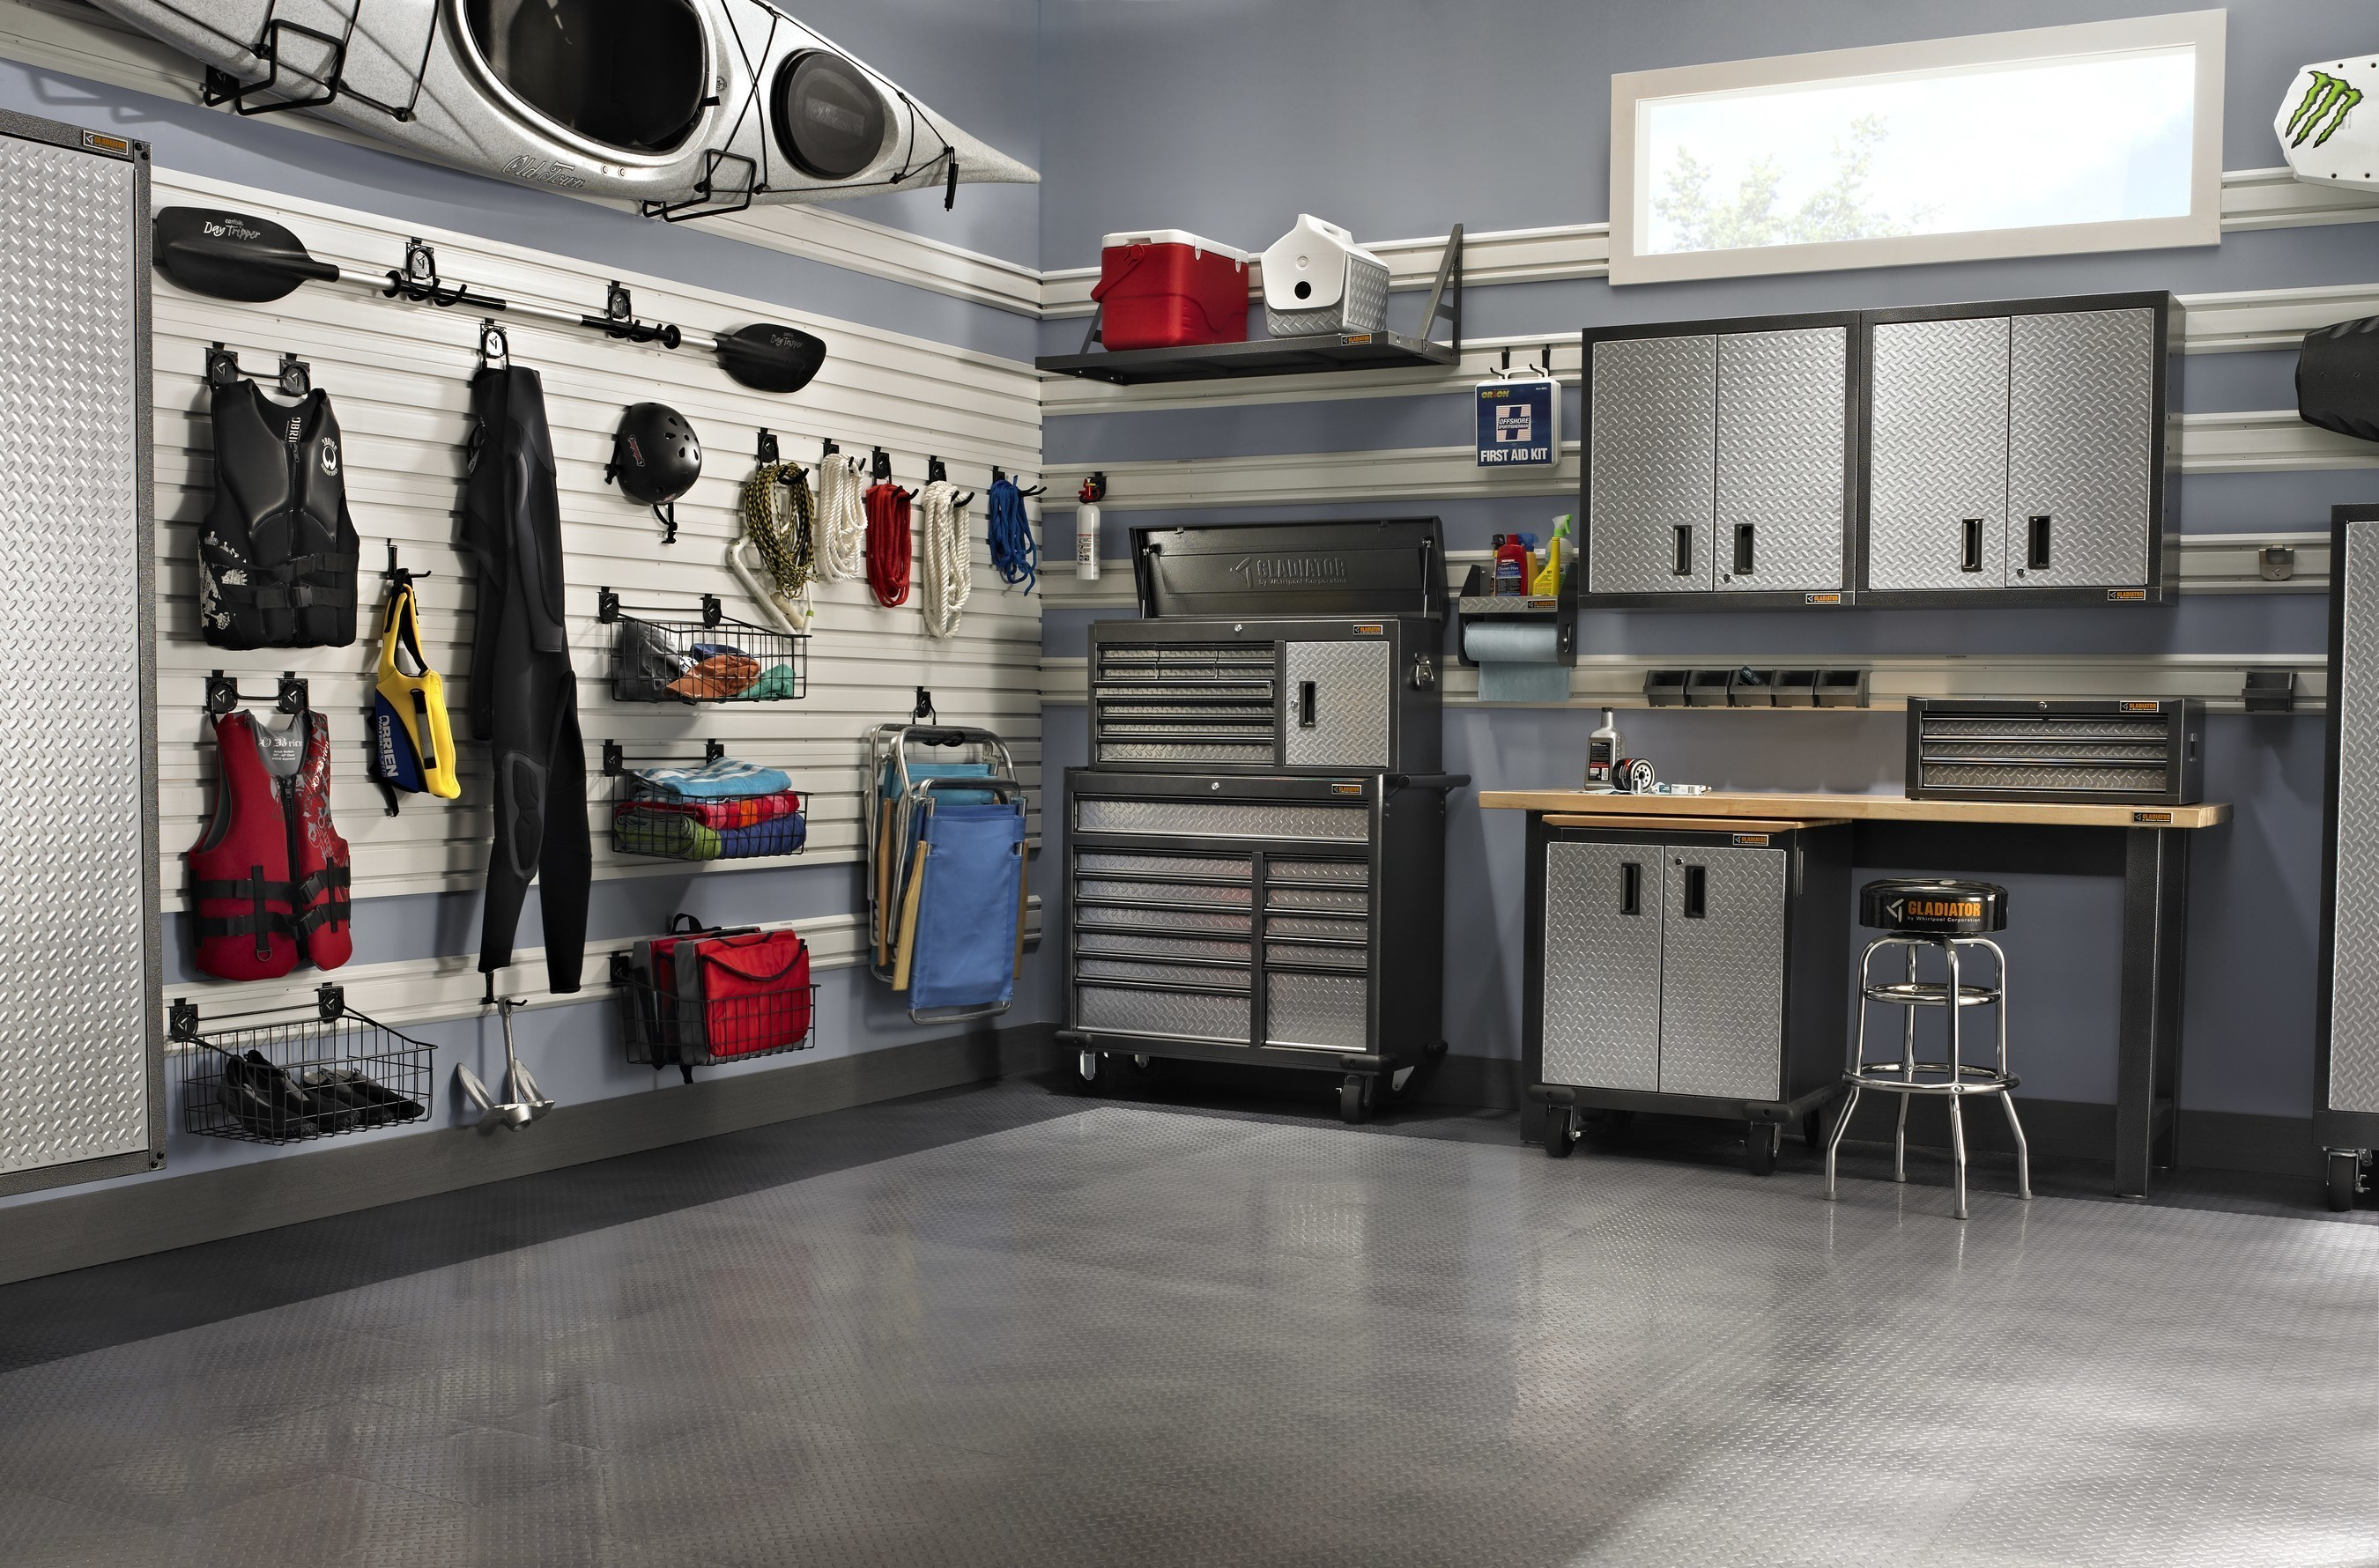 Gladiator Garage Wall Accessories Almost 1 In 4 Americans Say Their Garage Is Too Cluttered To Fit